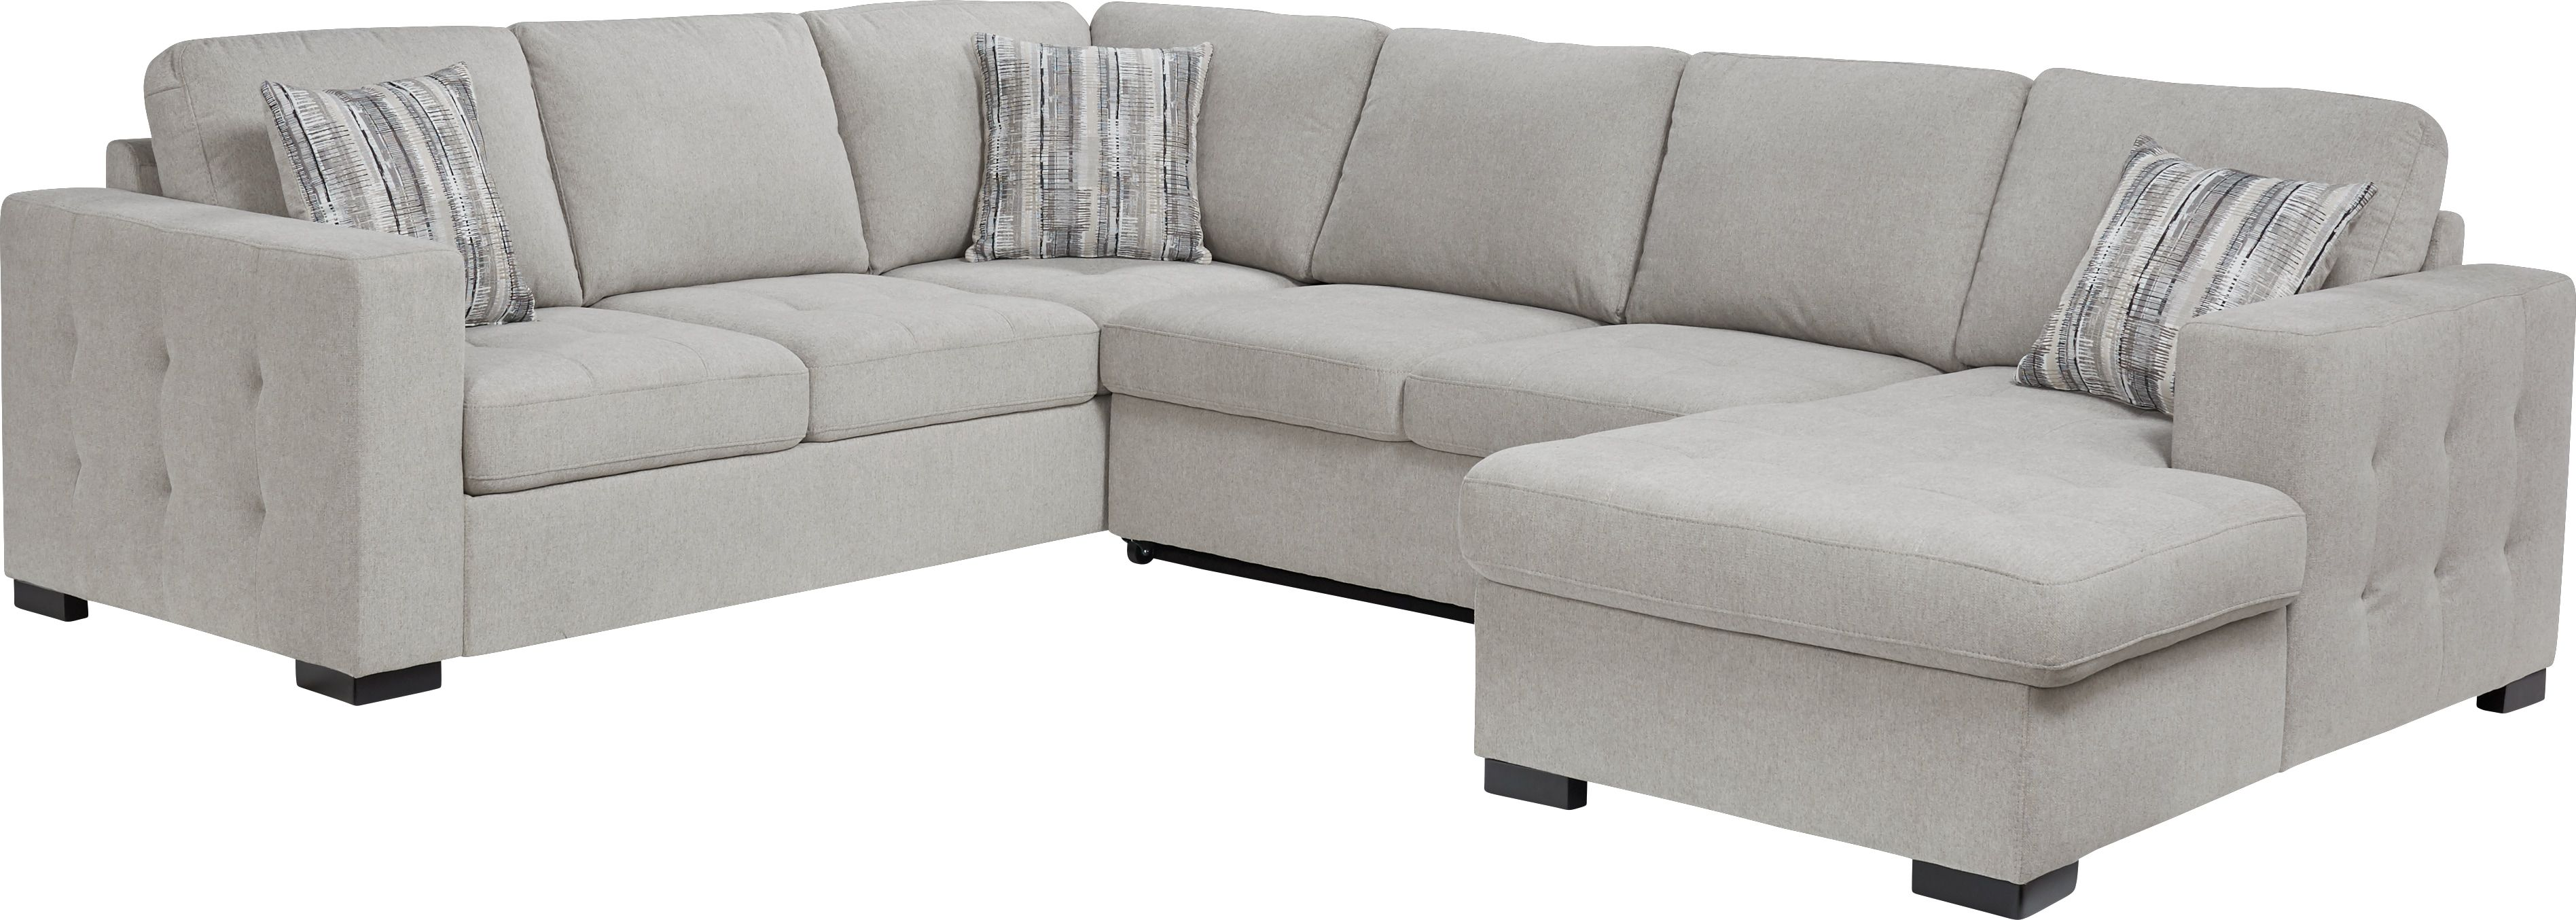 Norma Ecksofa Angelino Heights Gray 3 Pc Sleeper Sectional In 2019 Living Room